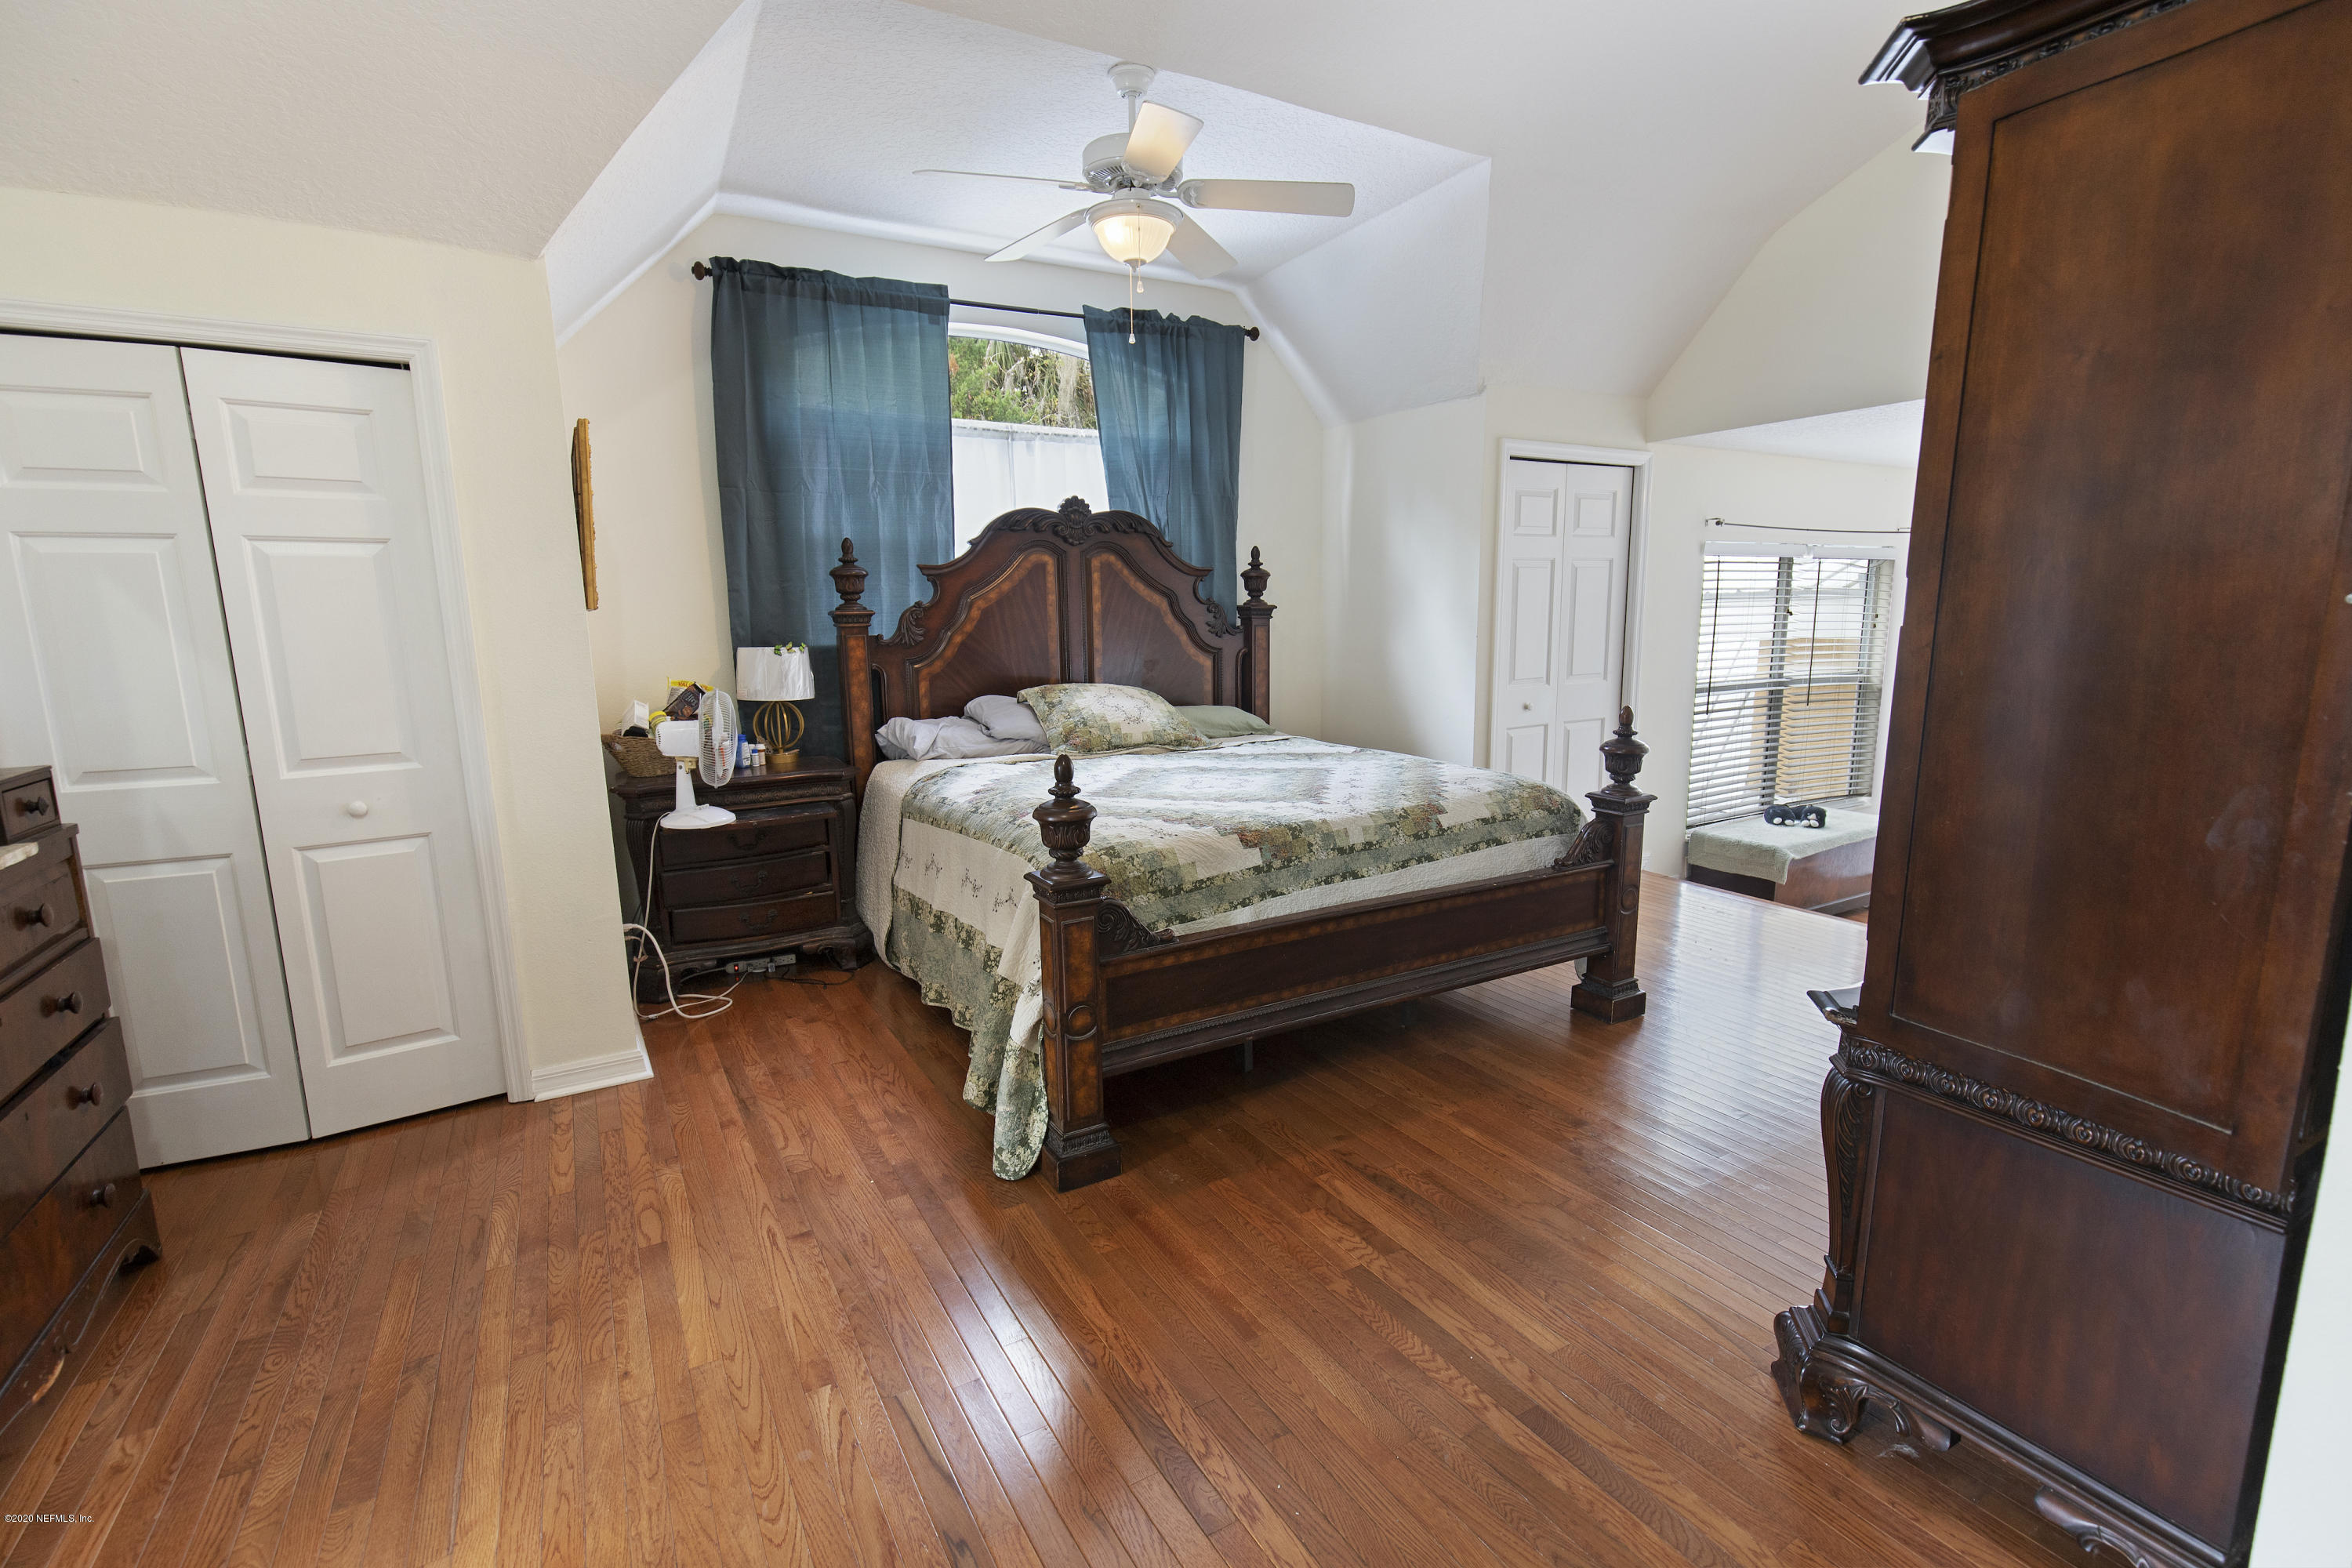 1500 LAKE DISSTON, BUNNELL, FLORIDA 32110, 4 Bedrooms Bedrooms, ,3 BathroomsBathrooms,Residential,For sale,LAKE DISSTON,1081415